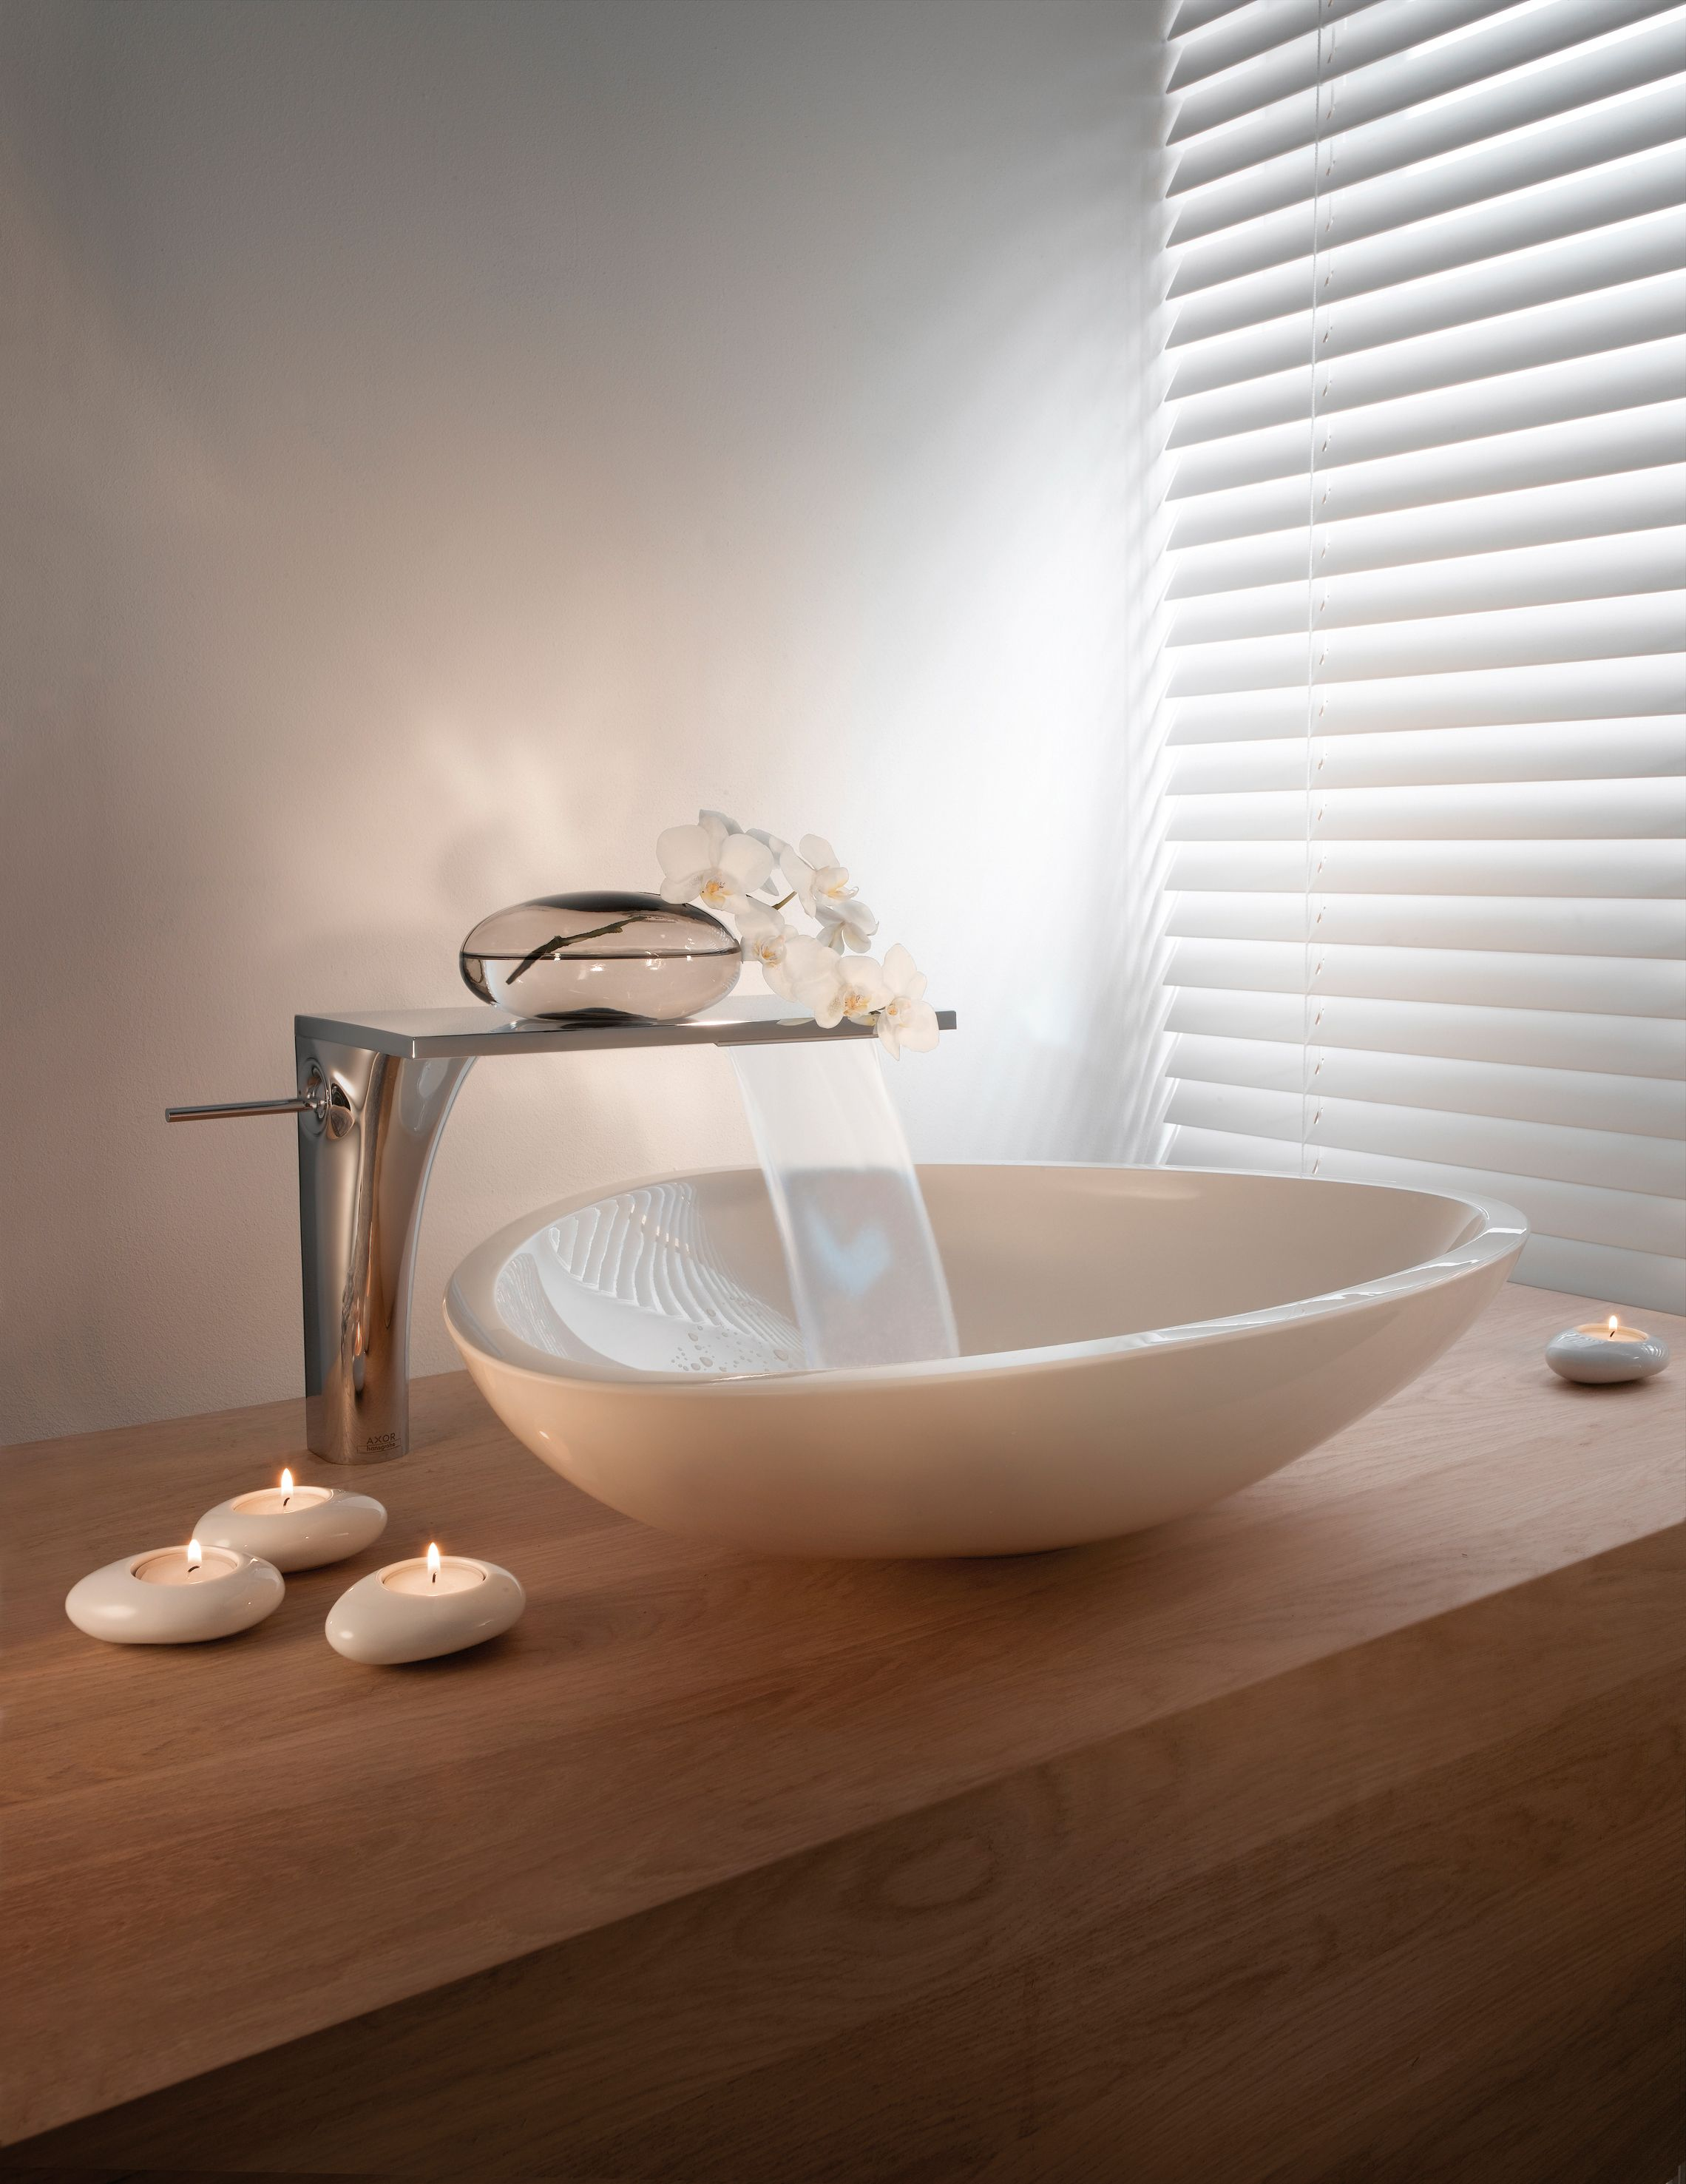 Superior Hansgrohe Axor Massaud Sink I Like Those Tea Lights! I Wonder How Hard It  Would Be To Get Some Smooth Stones And Put A Hole In Them! Photo Gallery